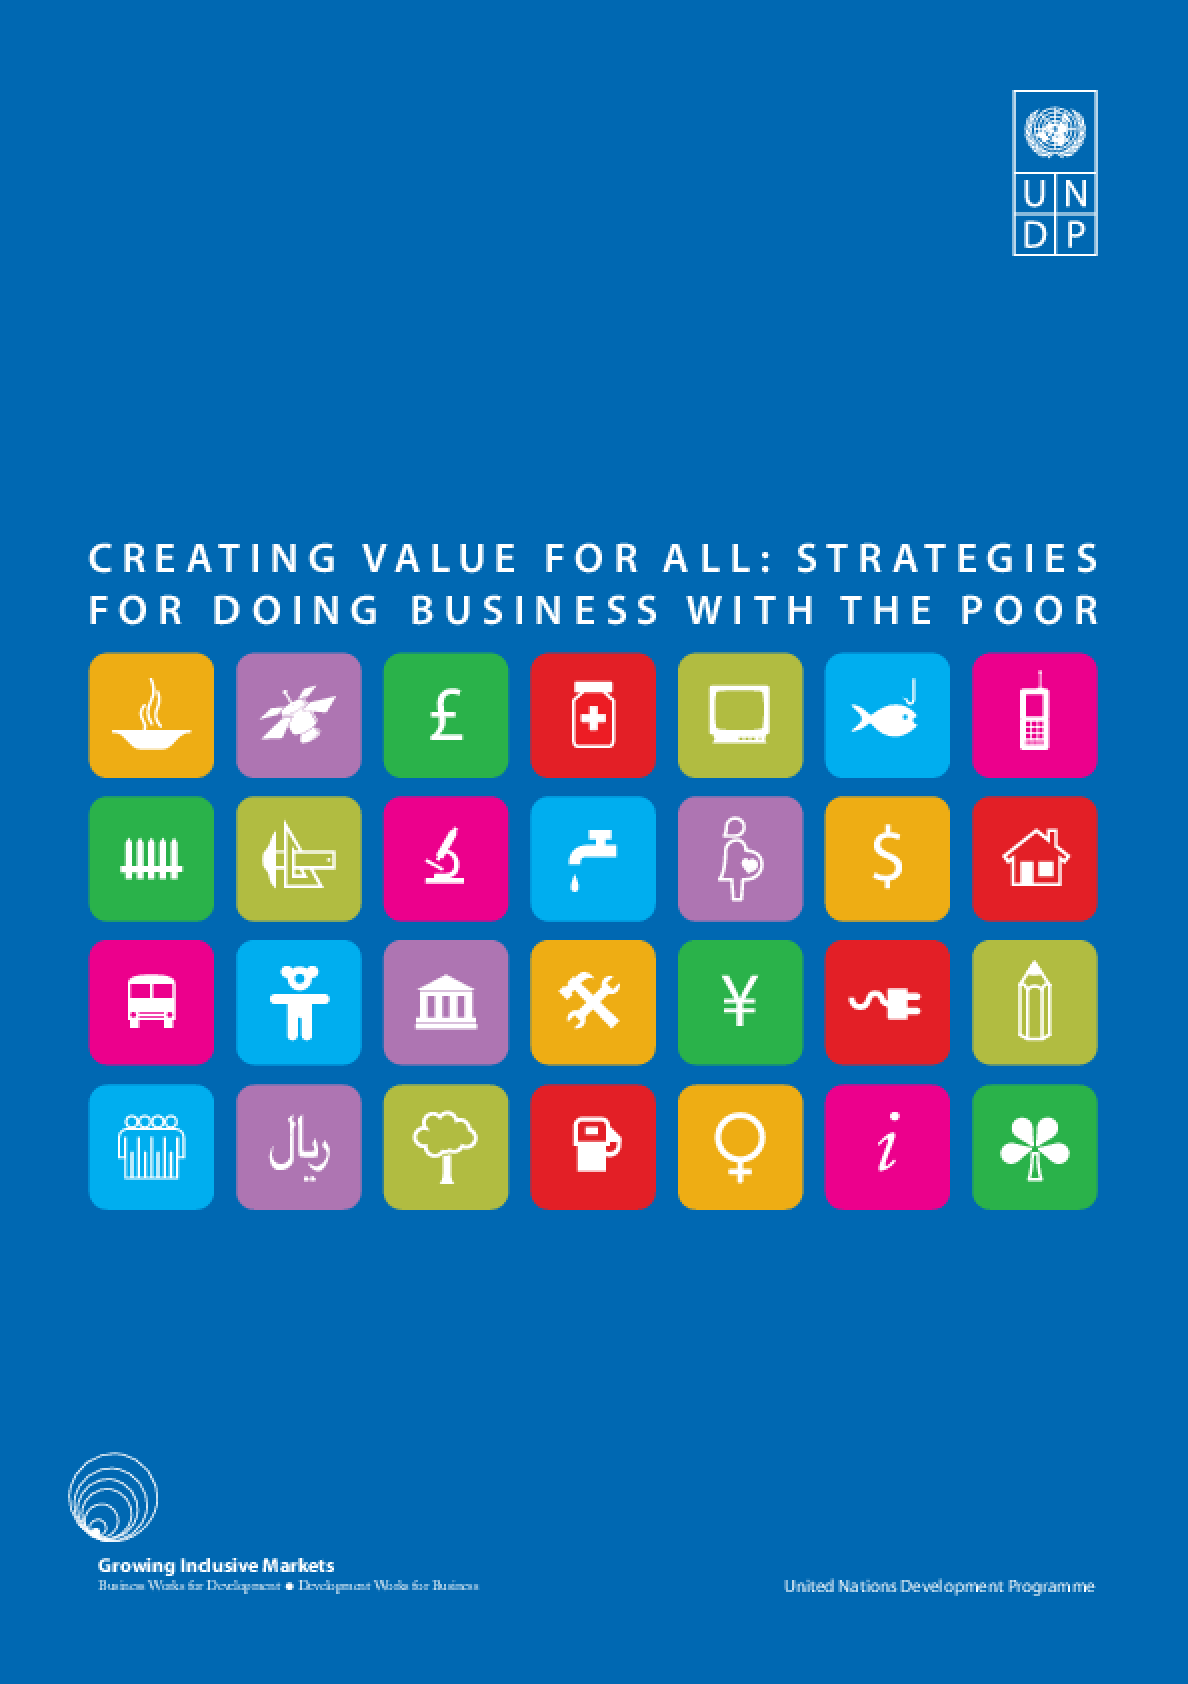 Creating Value for All: Strategies for Doing Business With the Poor